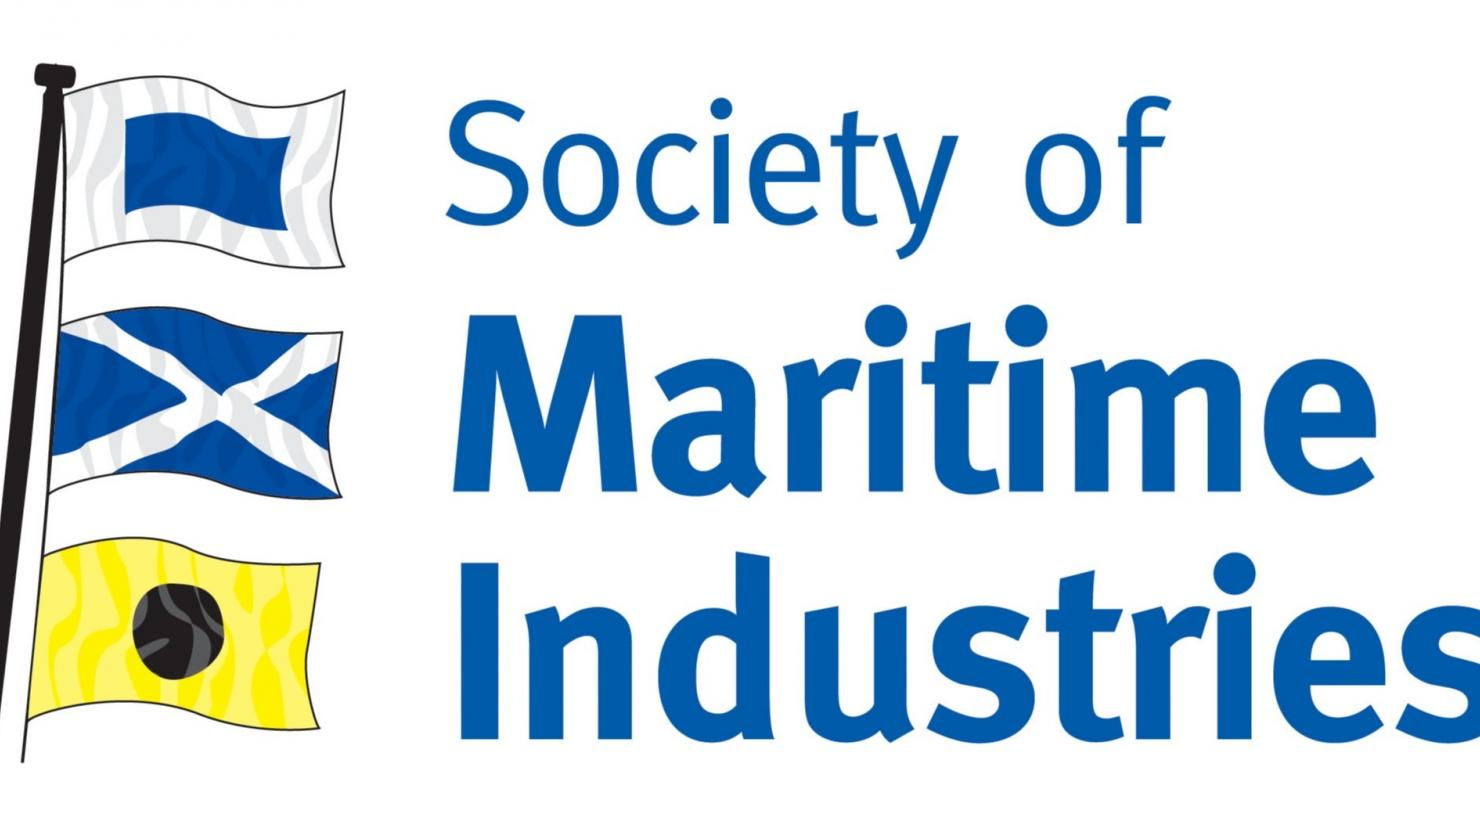 UK Society of Maritime Industries welcomes Omani delegation